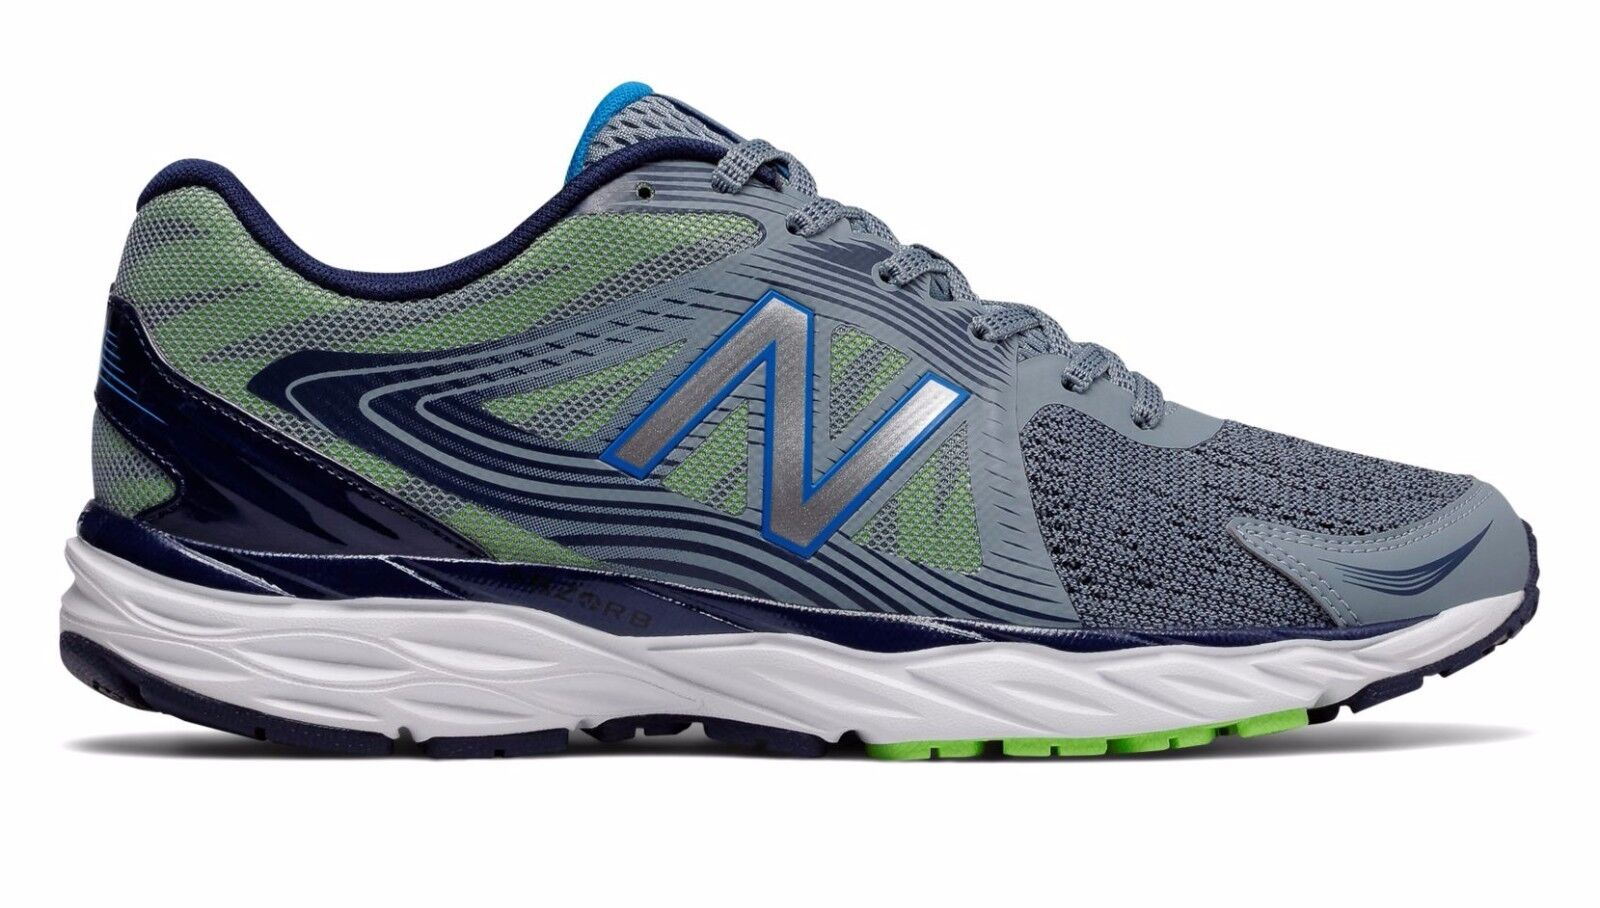 New Balance Mens V4 Cushioned Road Running shoes Trainers Sneakers